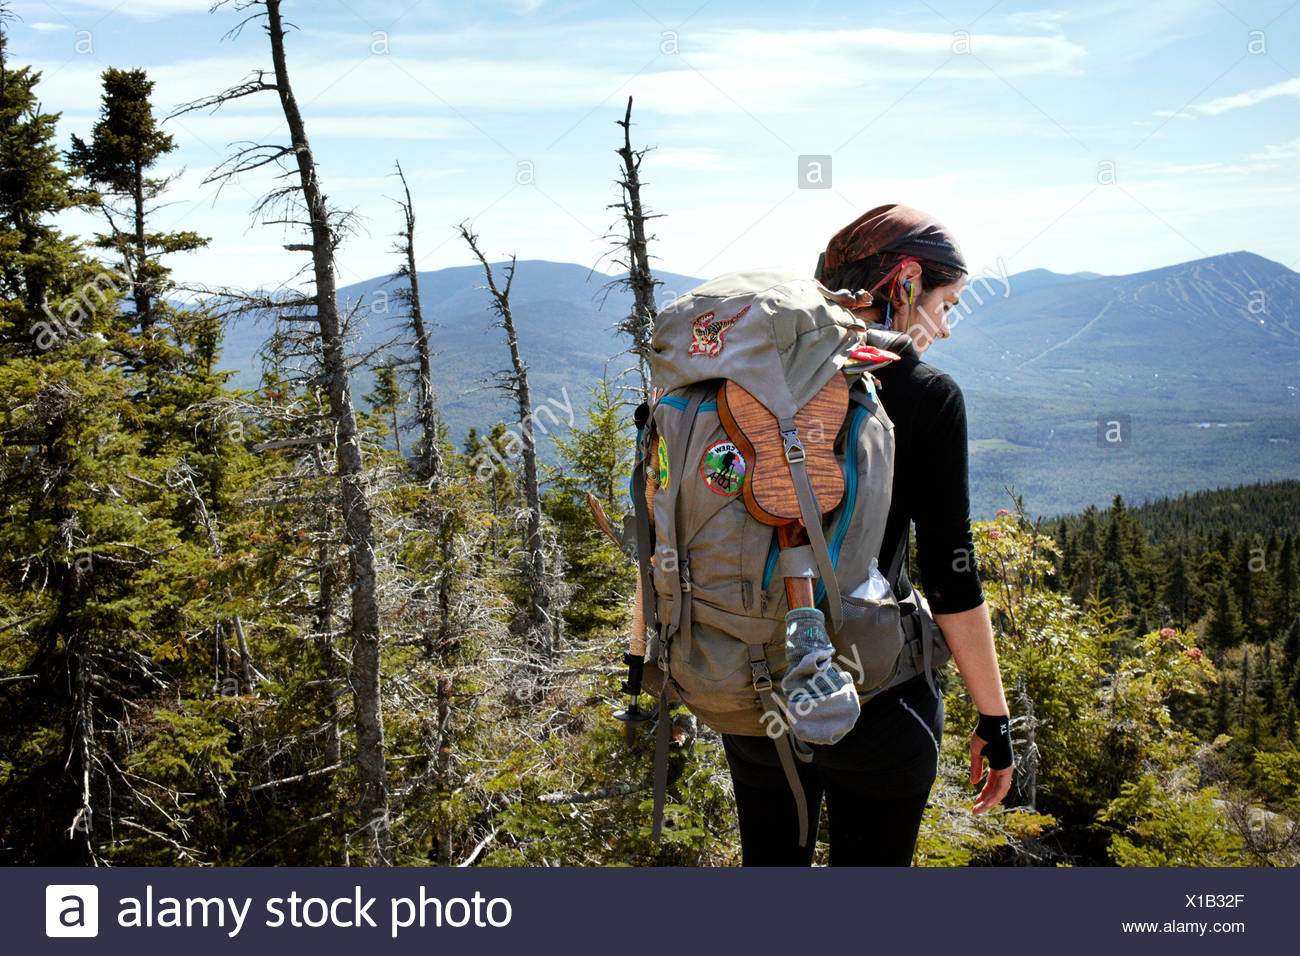 A hiker pauses to reflect. - Stock Image